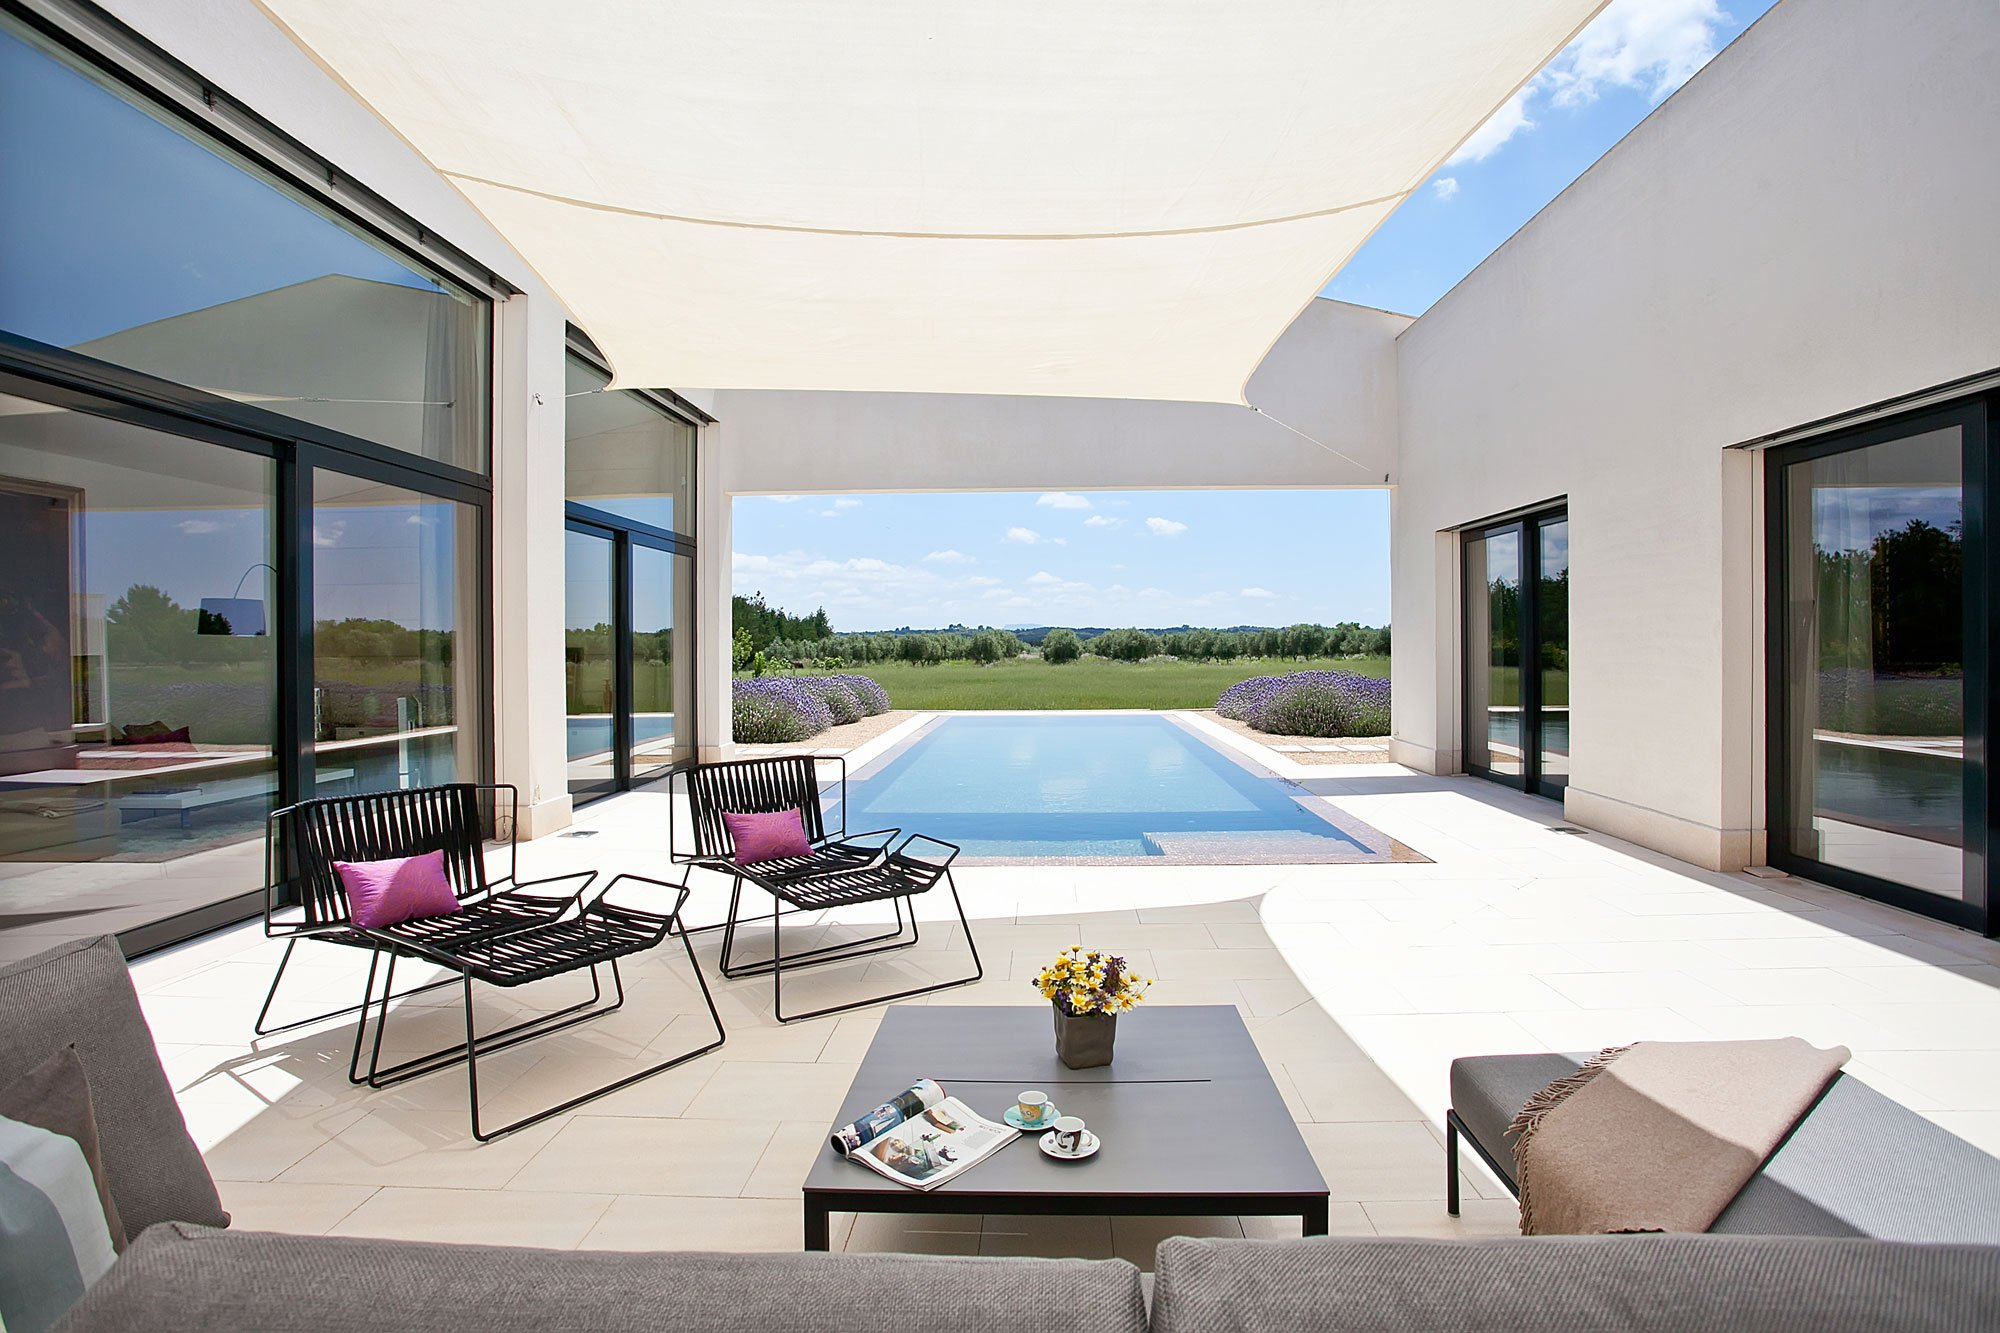 A-Holiday-Home-in-Mallorca-09